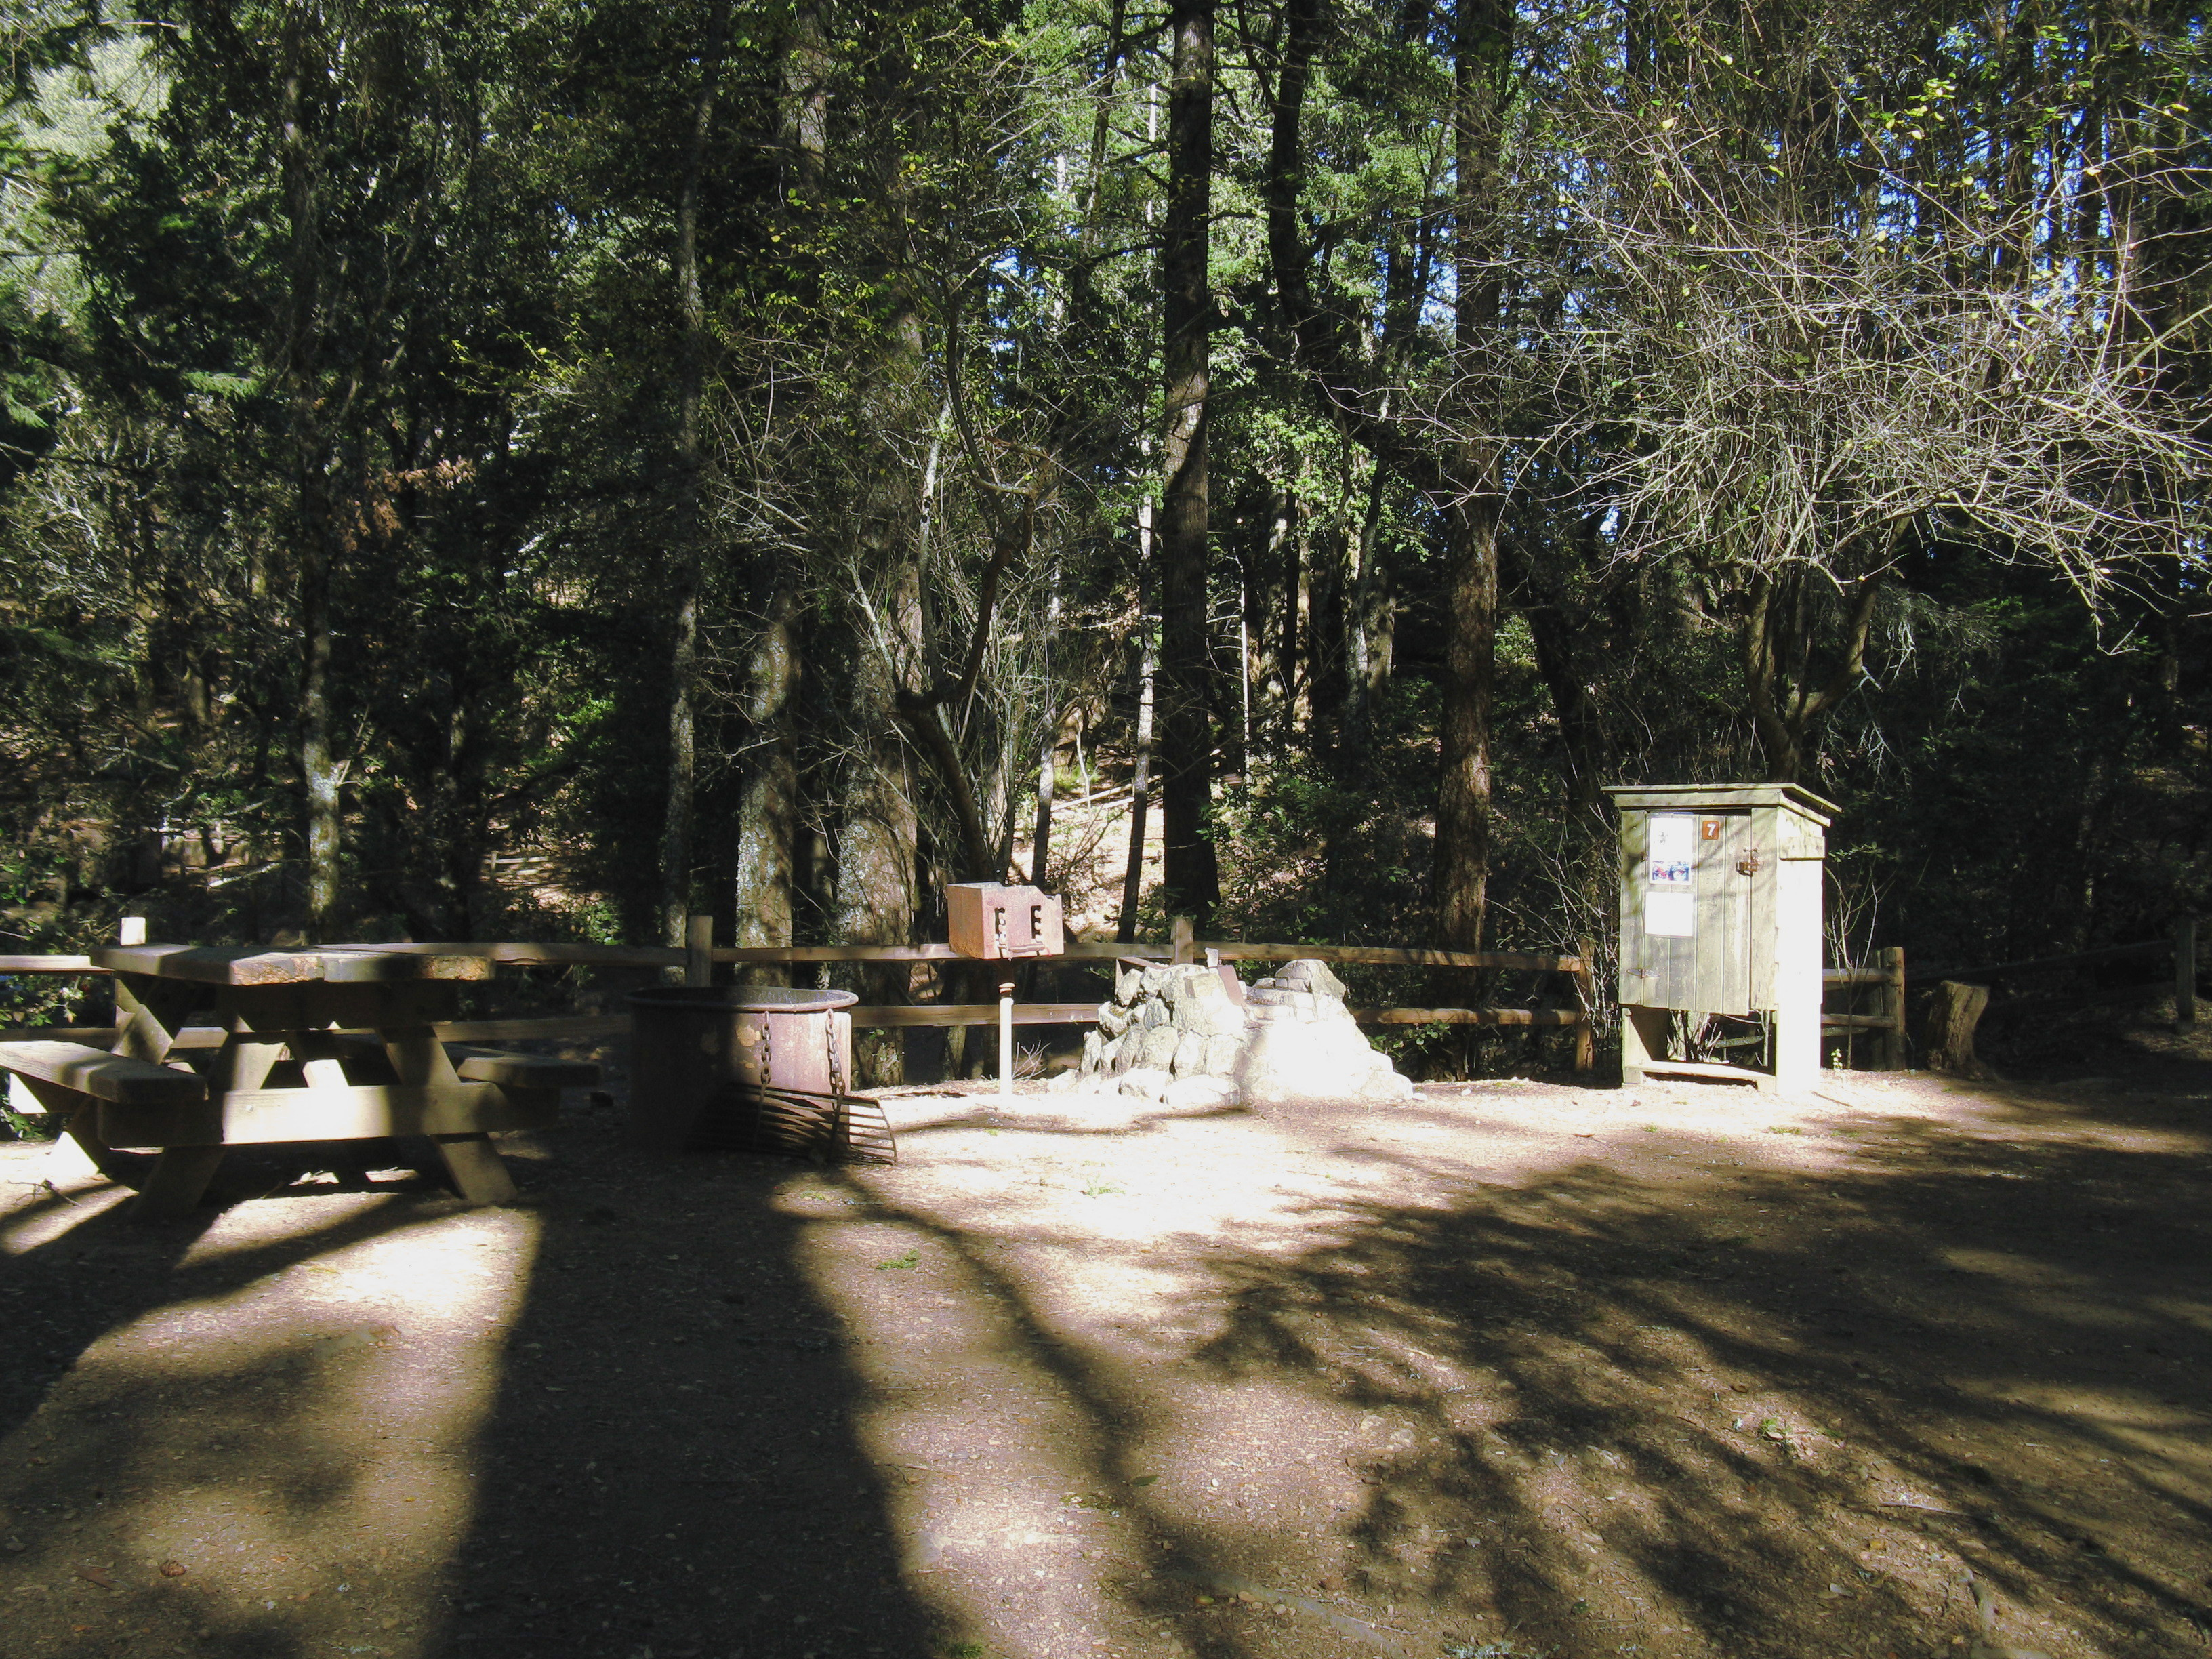 Pantoll Campground Site 7